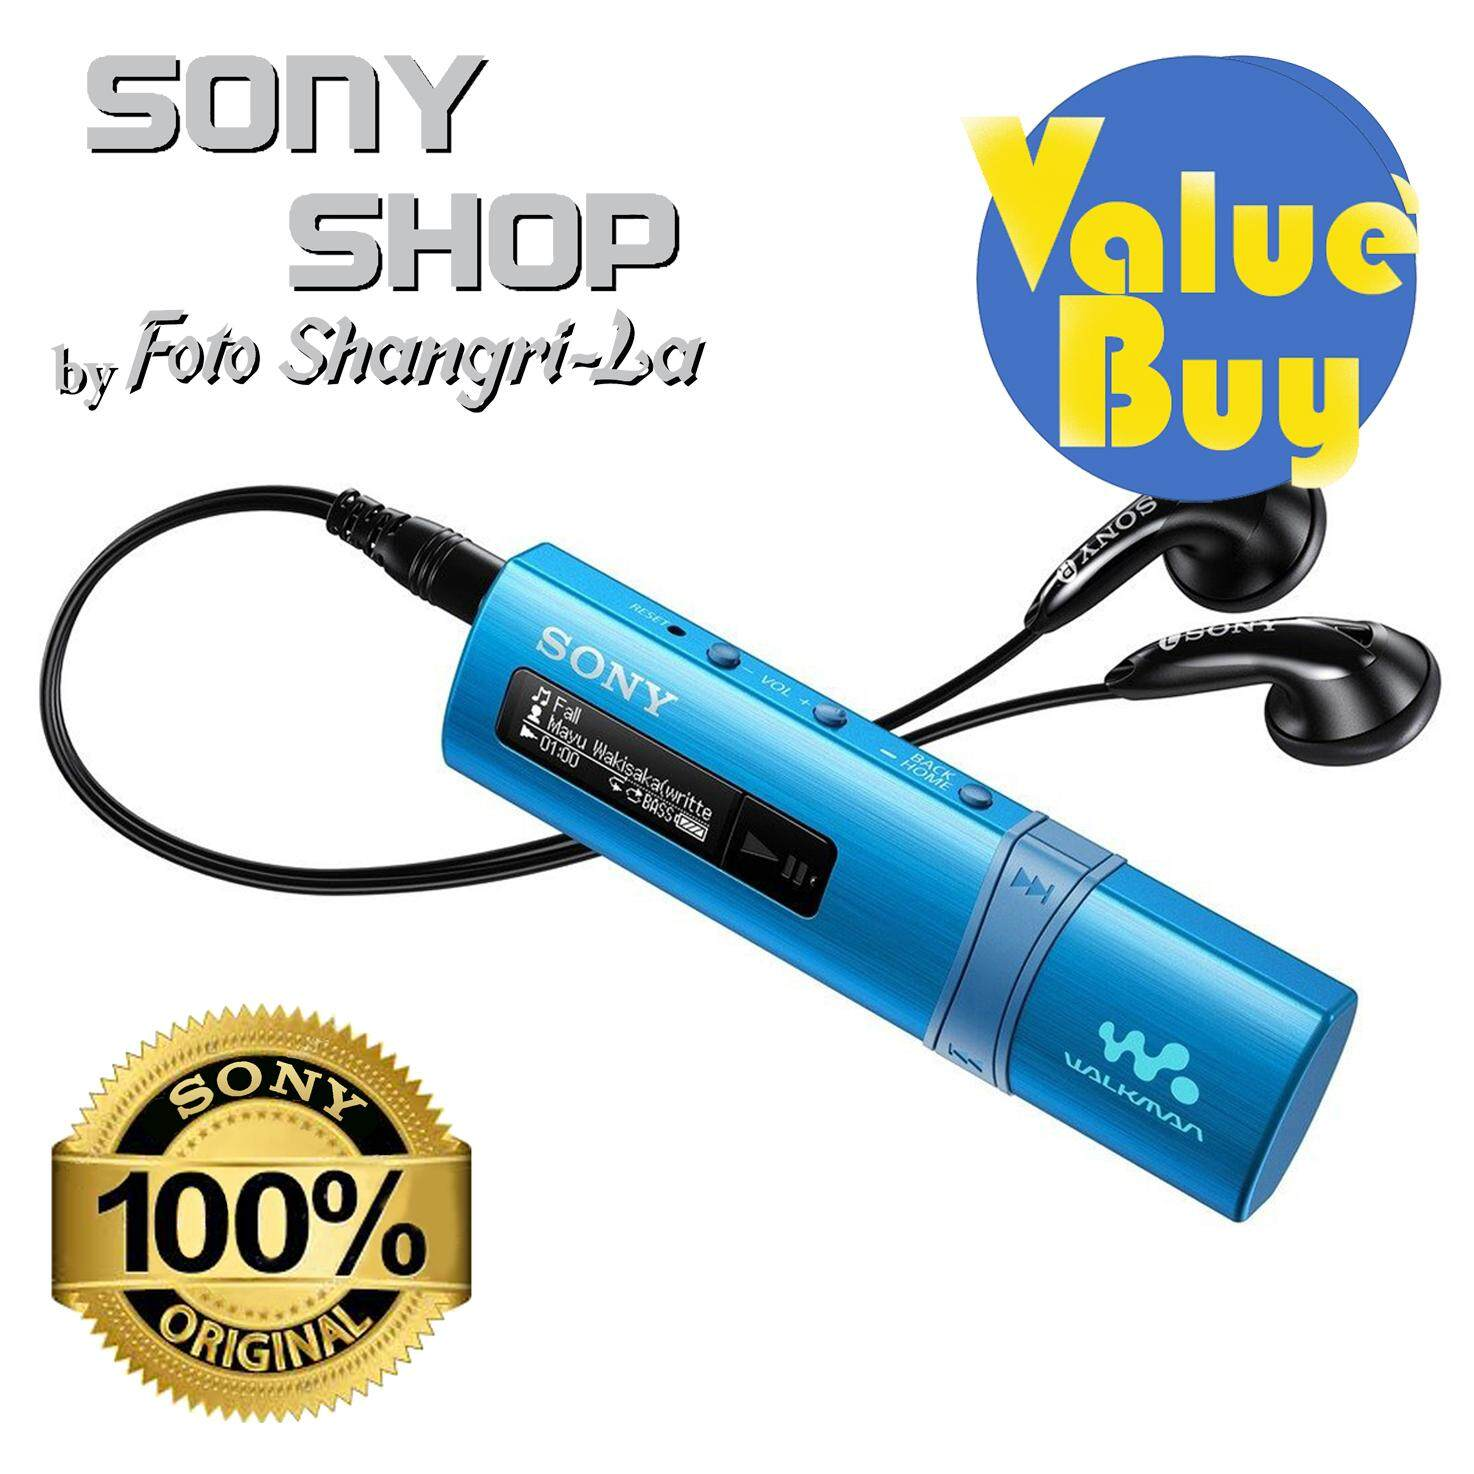 Sony Shop Mp3 Players Price In Malaysia Best Walkman With High Resolution Audio Nw A35 Pink Nwz B183f 4gb Blue